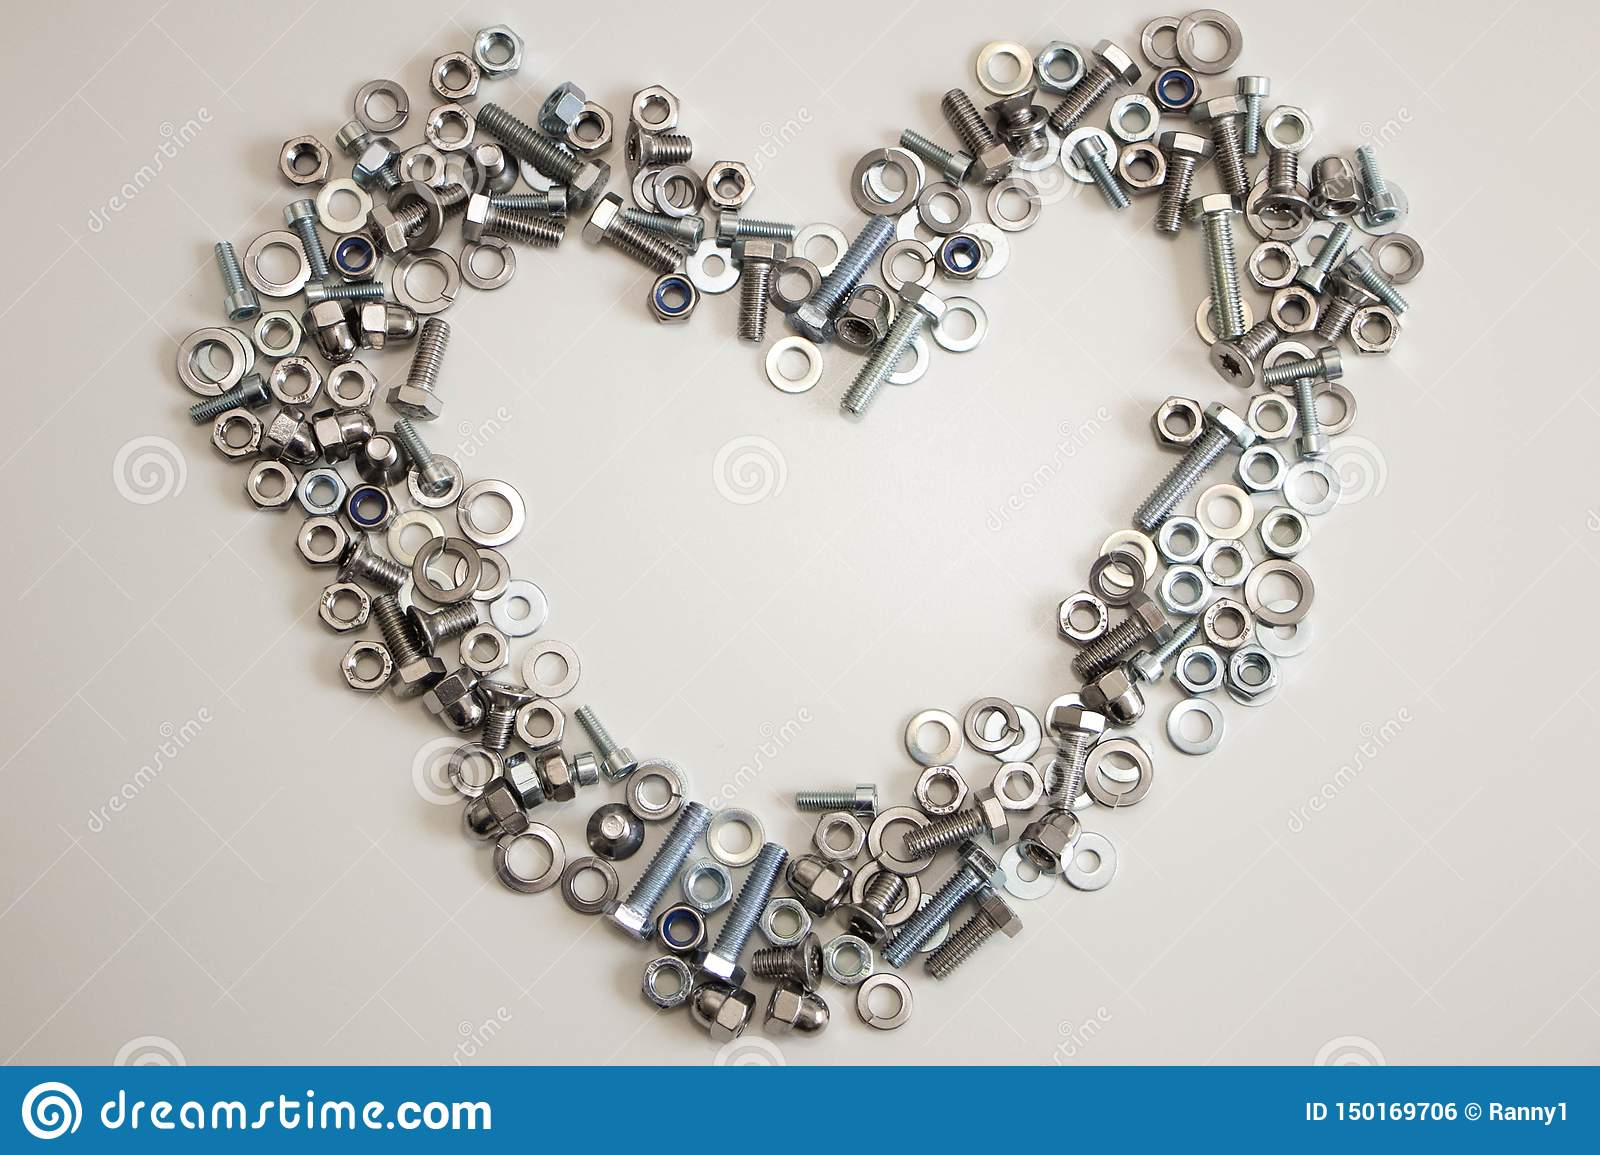 A heart lined with a variety of nuts, bolts, screws and washers with empty space inside on a light gray background